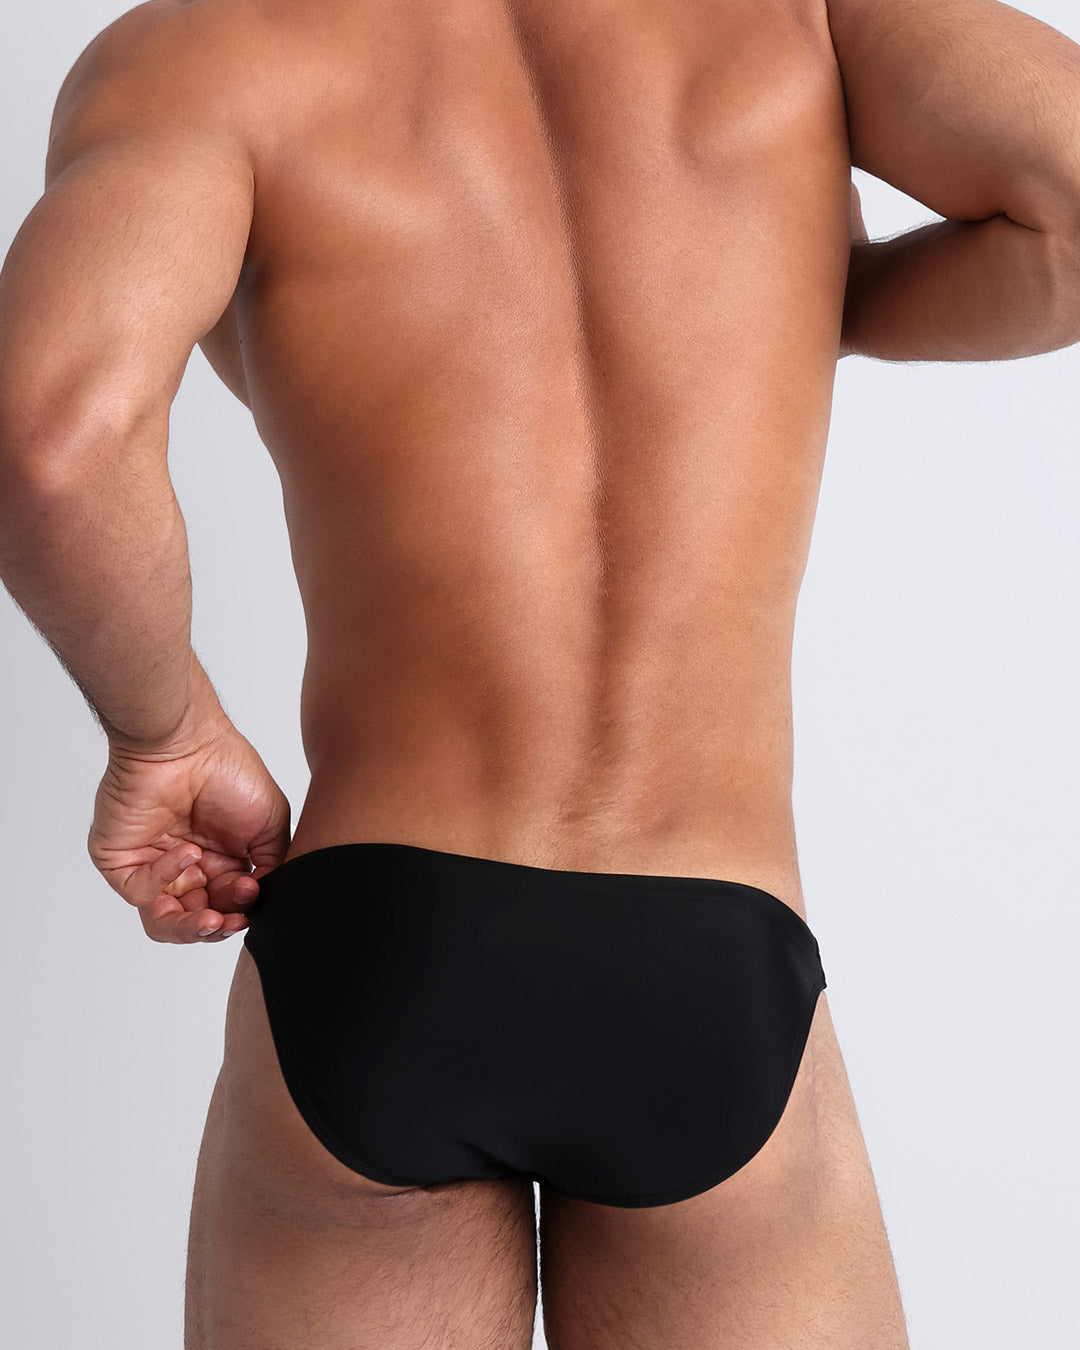 Frontal view of a sexy male model wearing men's swimsuit in black by the Bang! Menswear brand from Miami.